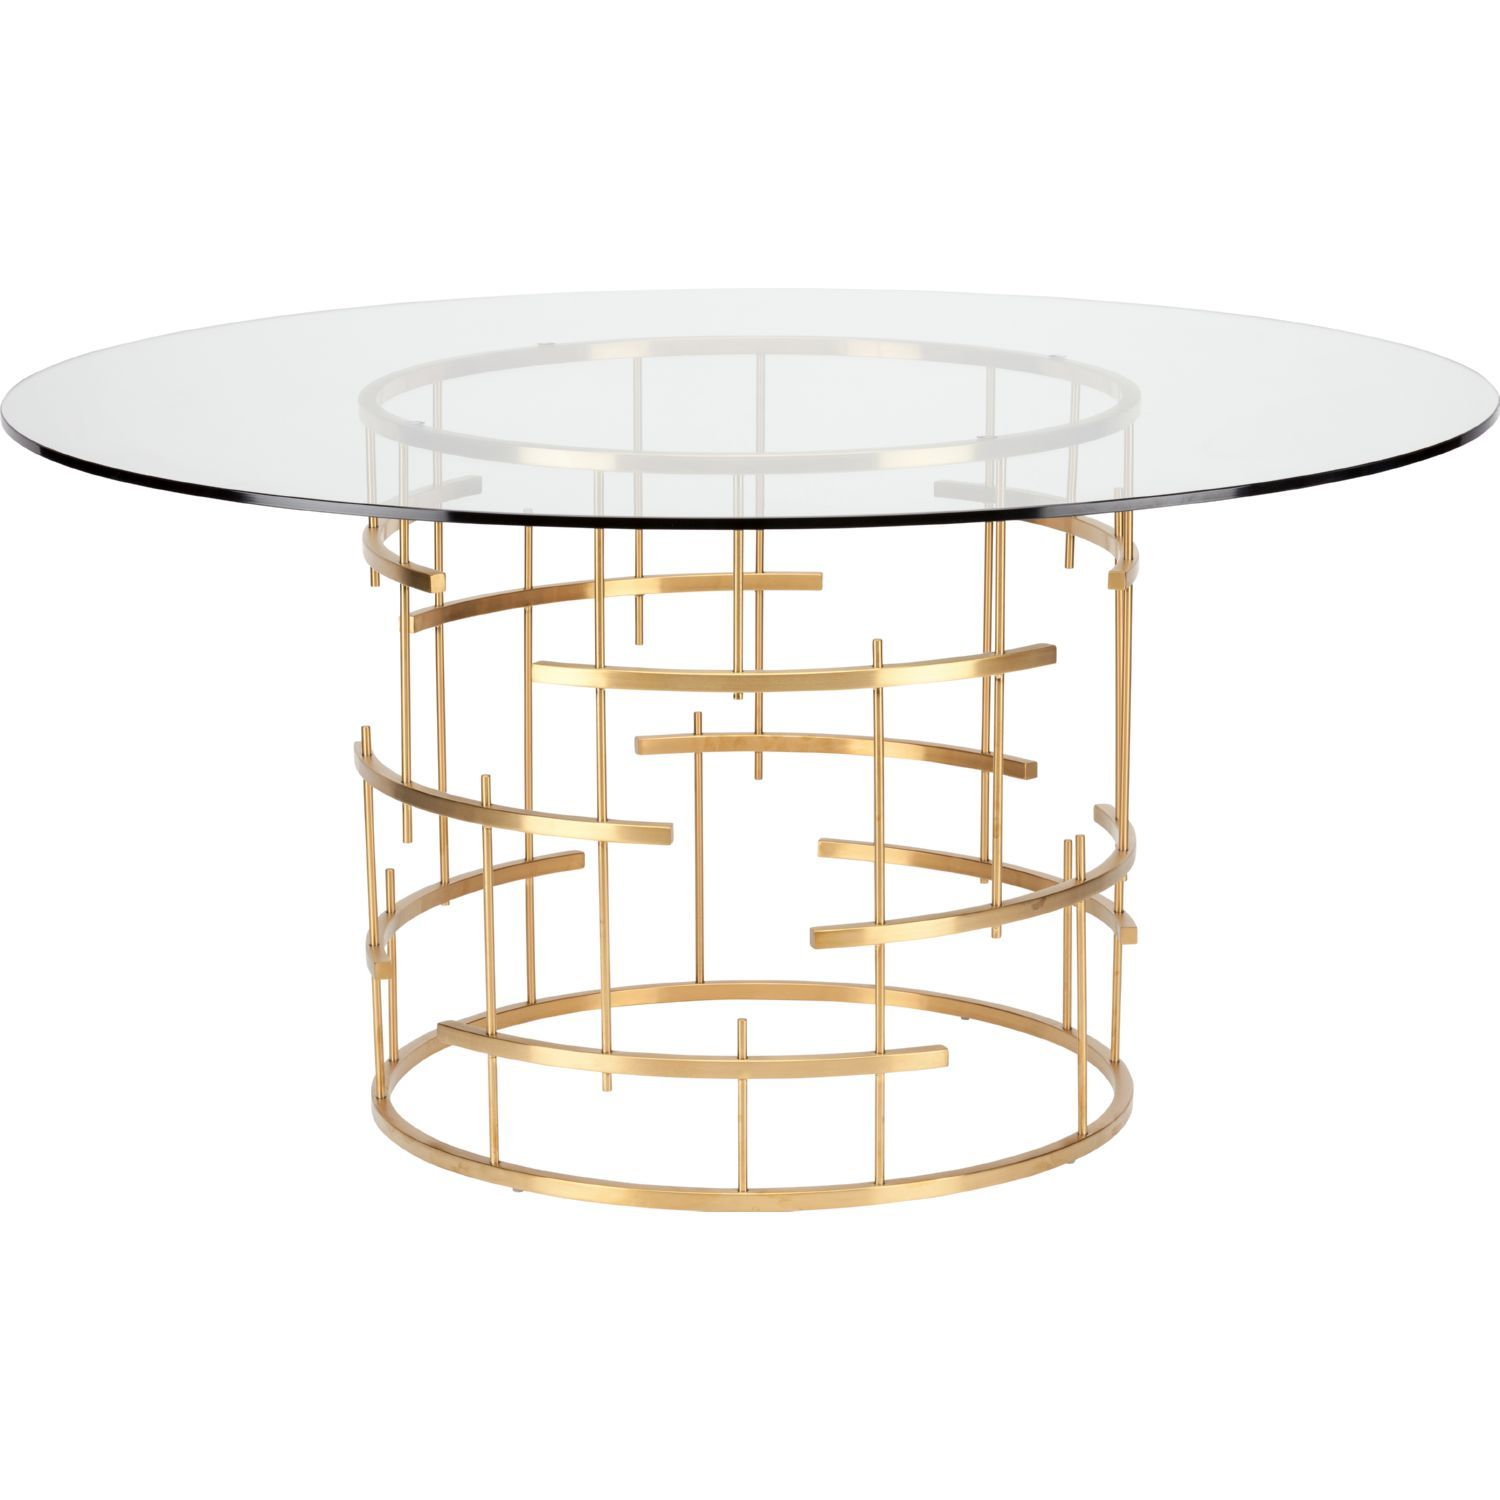 Nuevo Tiffany Round 59 Dining Table Clear Glass Brushed Gold